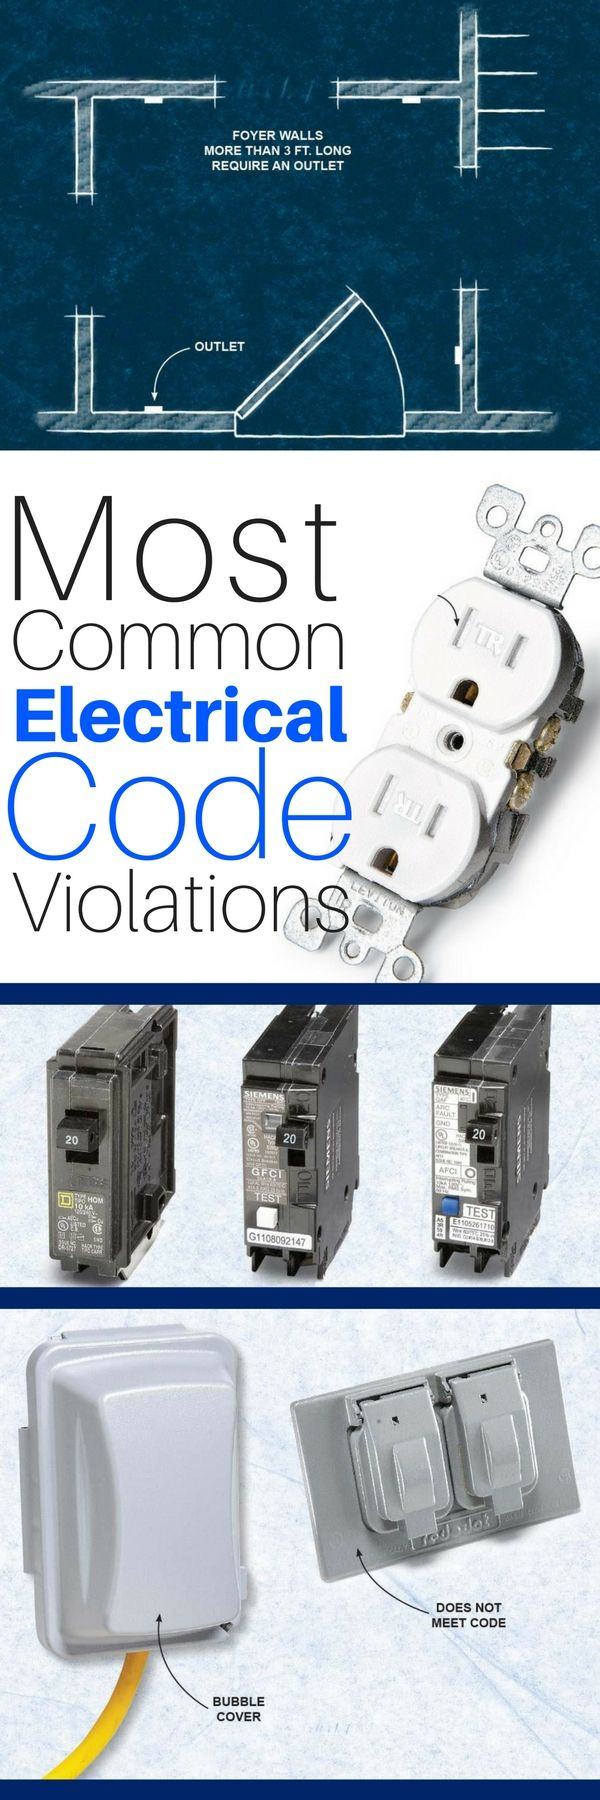 The 8 Most Common National Electric Code Violations Diyers Make Wiring On Pinterest Electrical Home And These Are